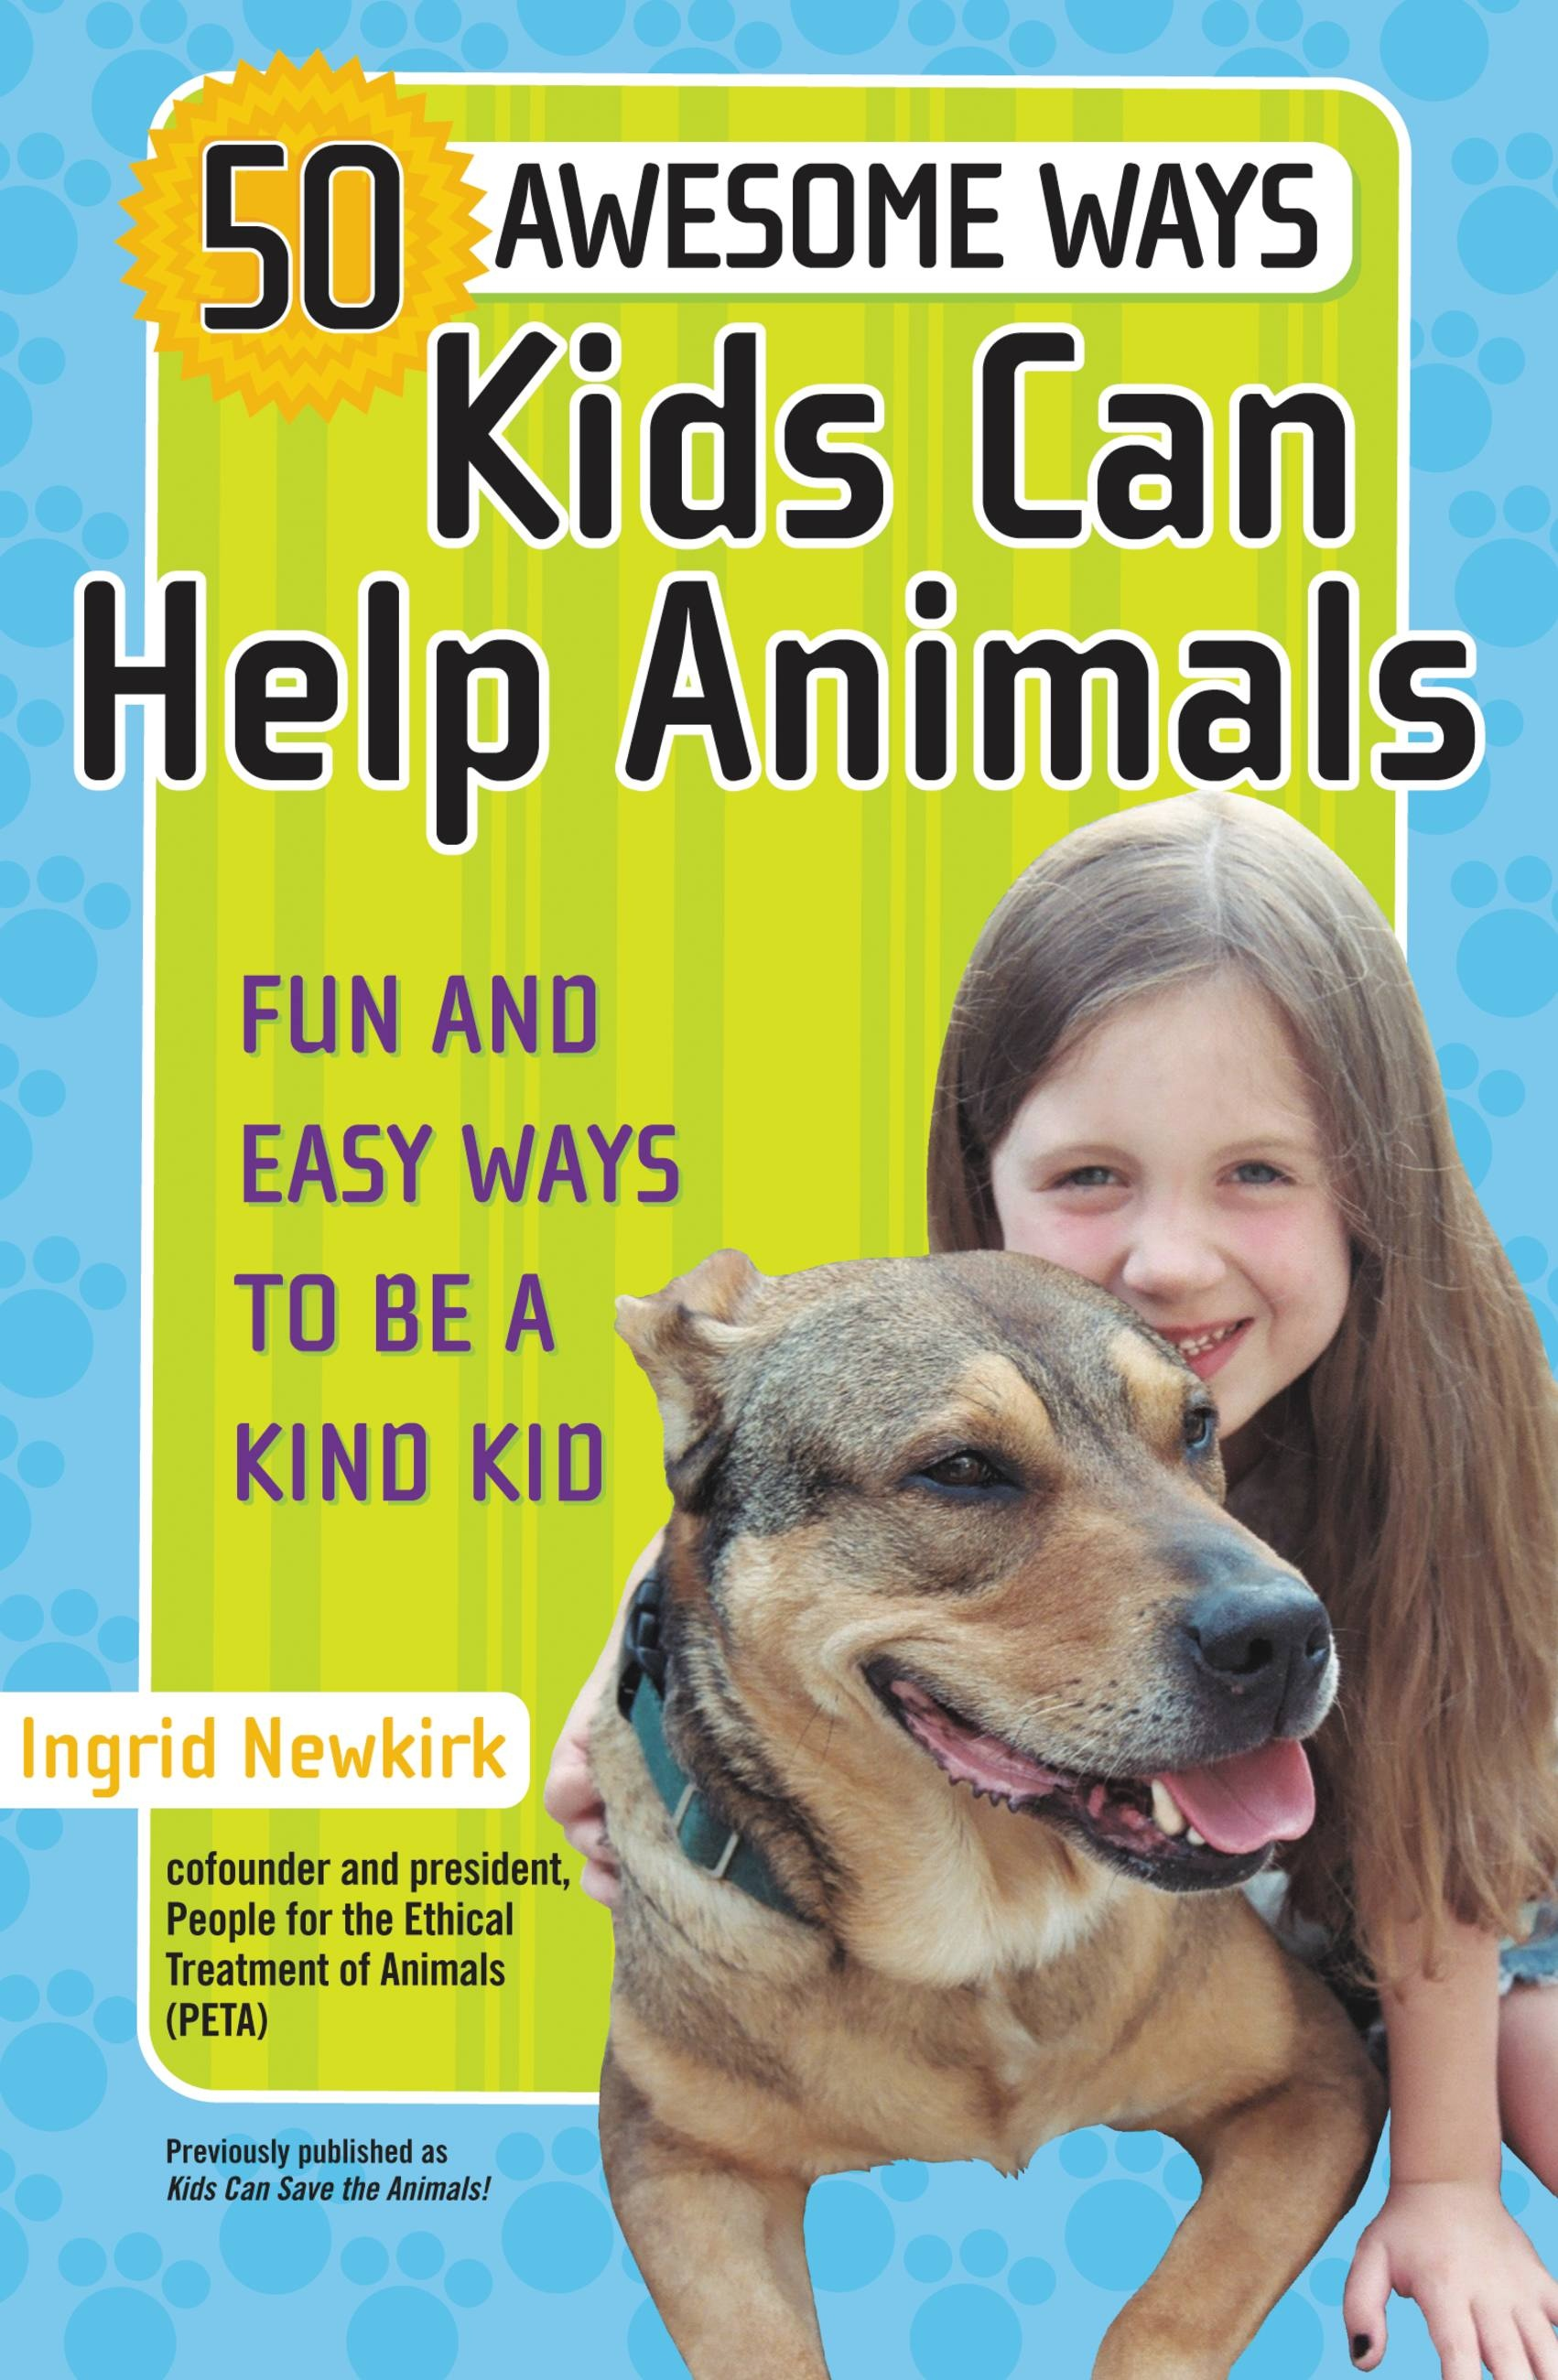 50 Awesome Ways Kids Can Help Animals